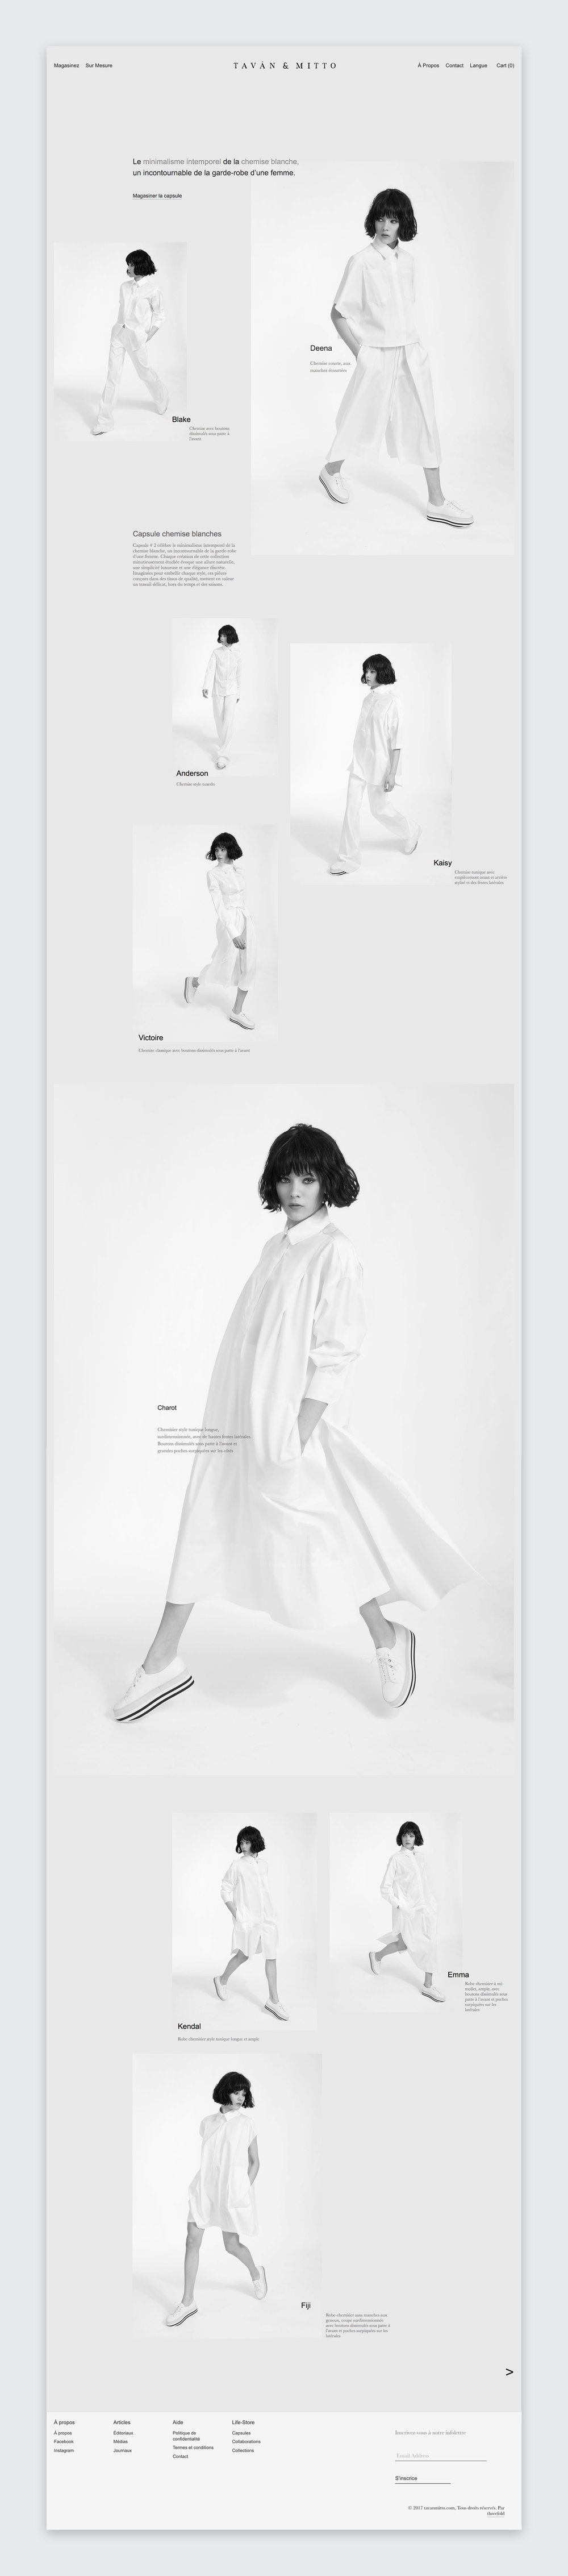 Tavan & Mitto  2nd capsule collection website design by  threefold